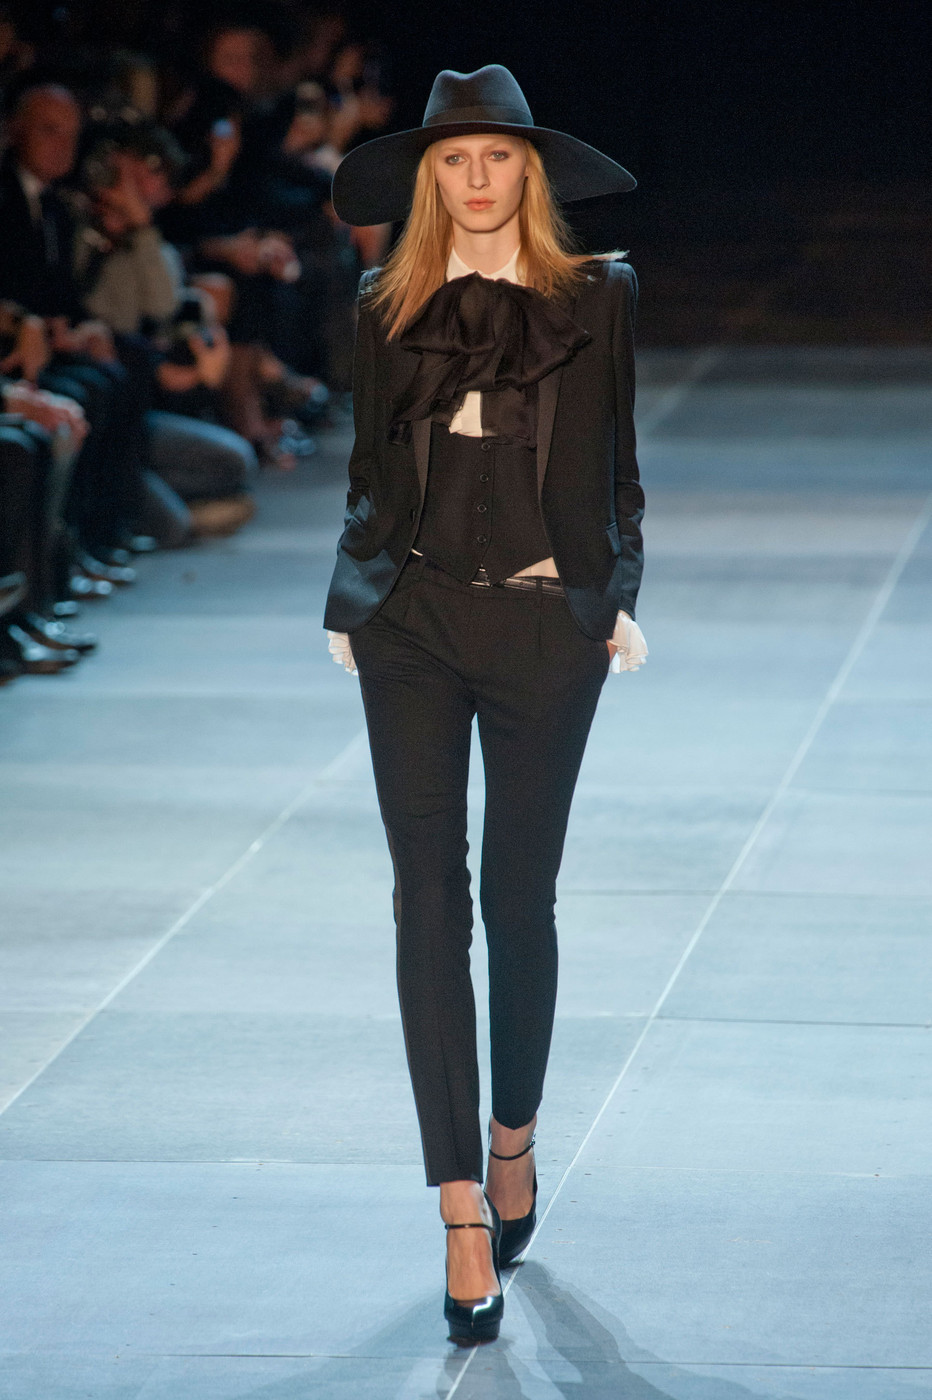 Saint Laurent Spring/Summer 2013